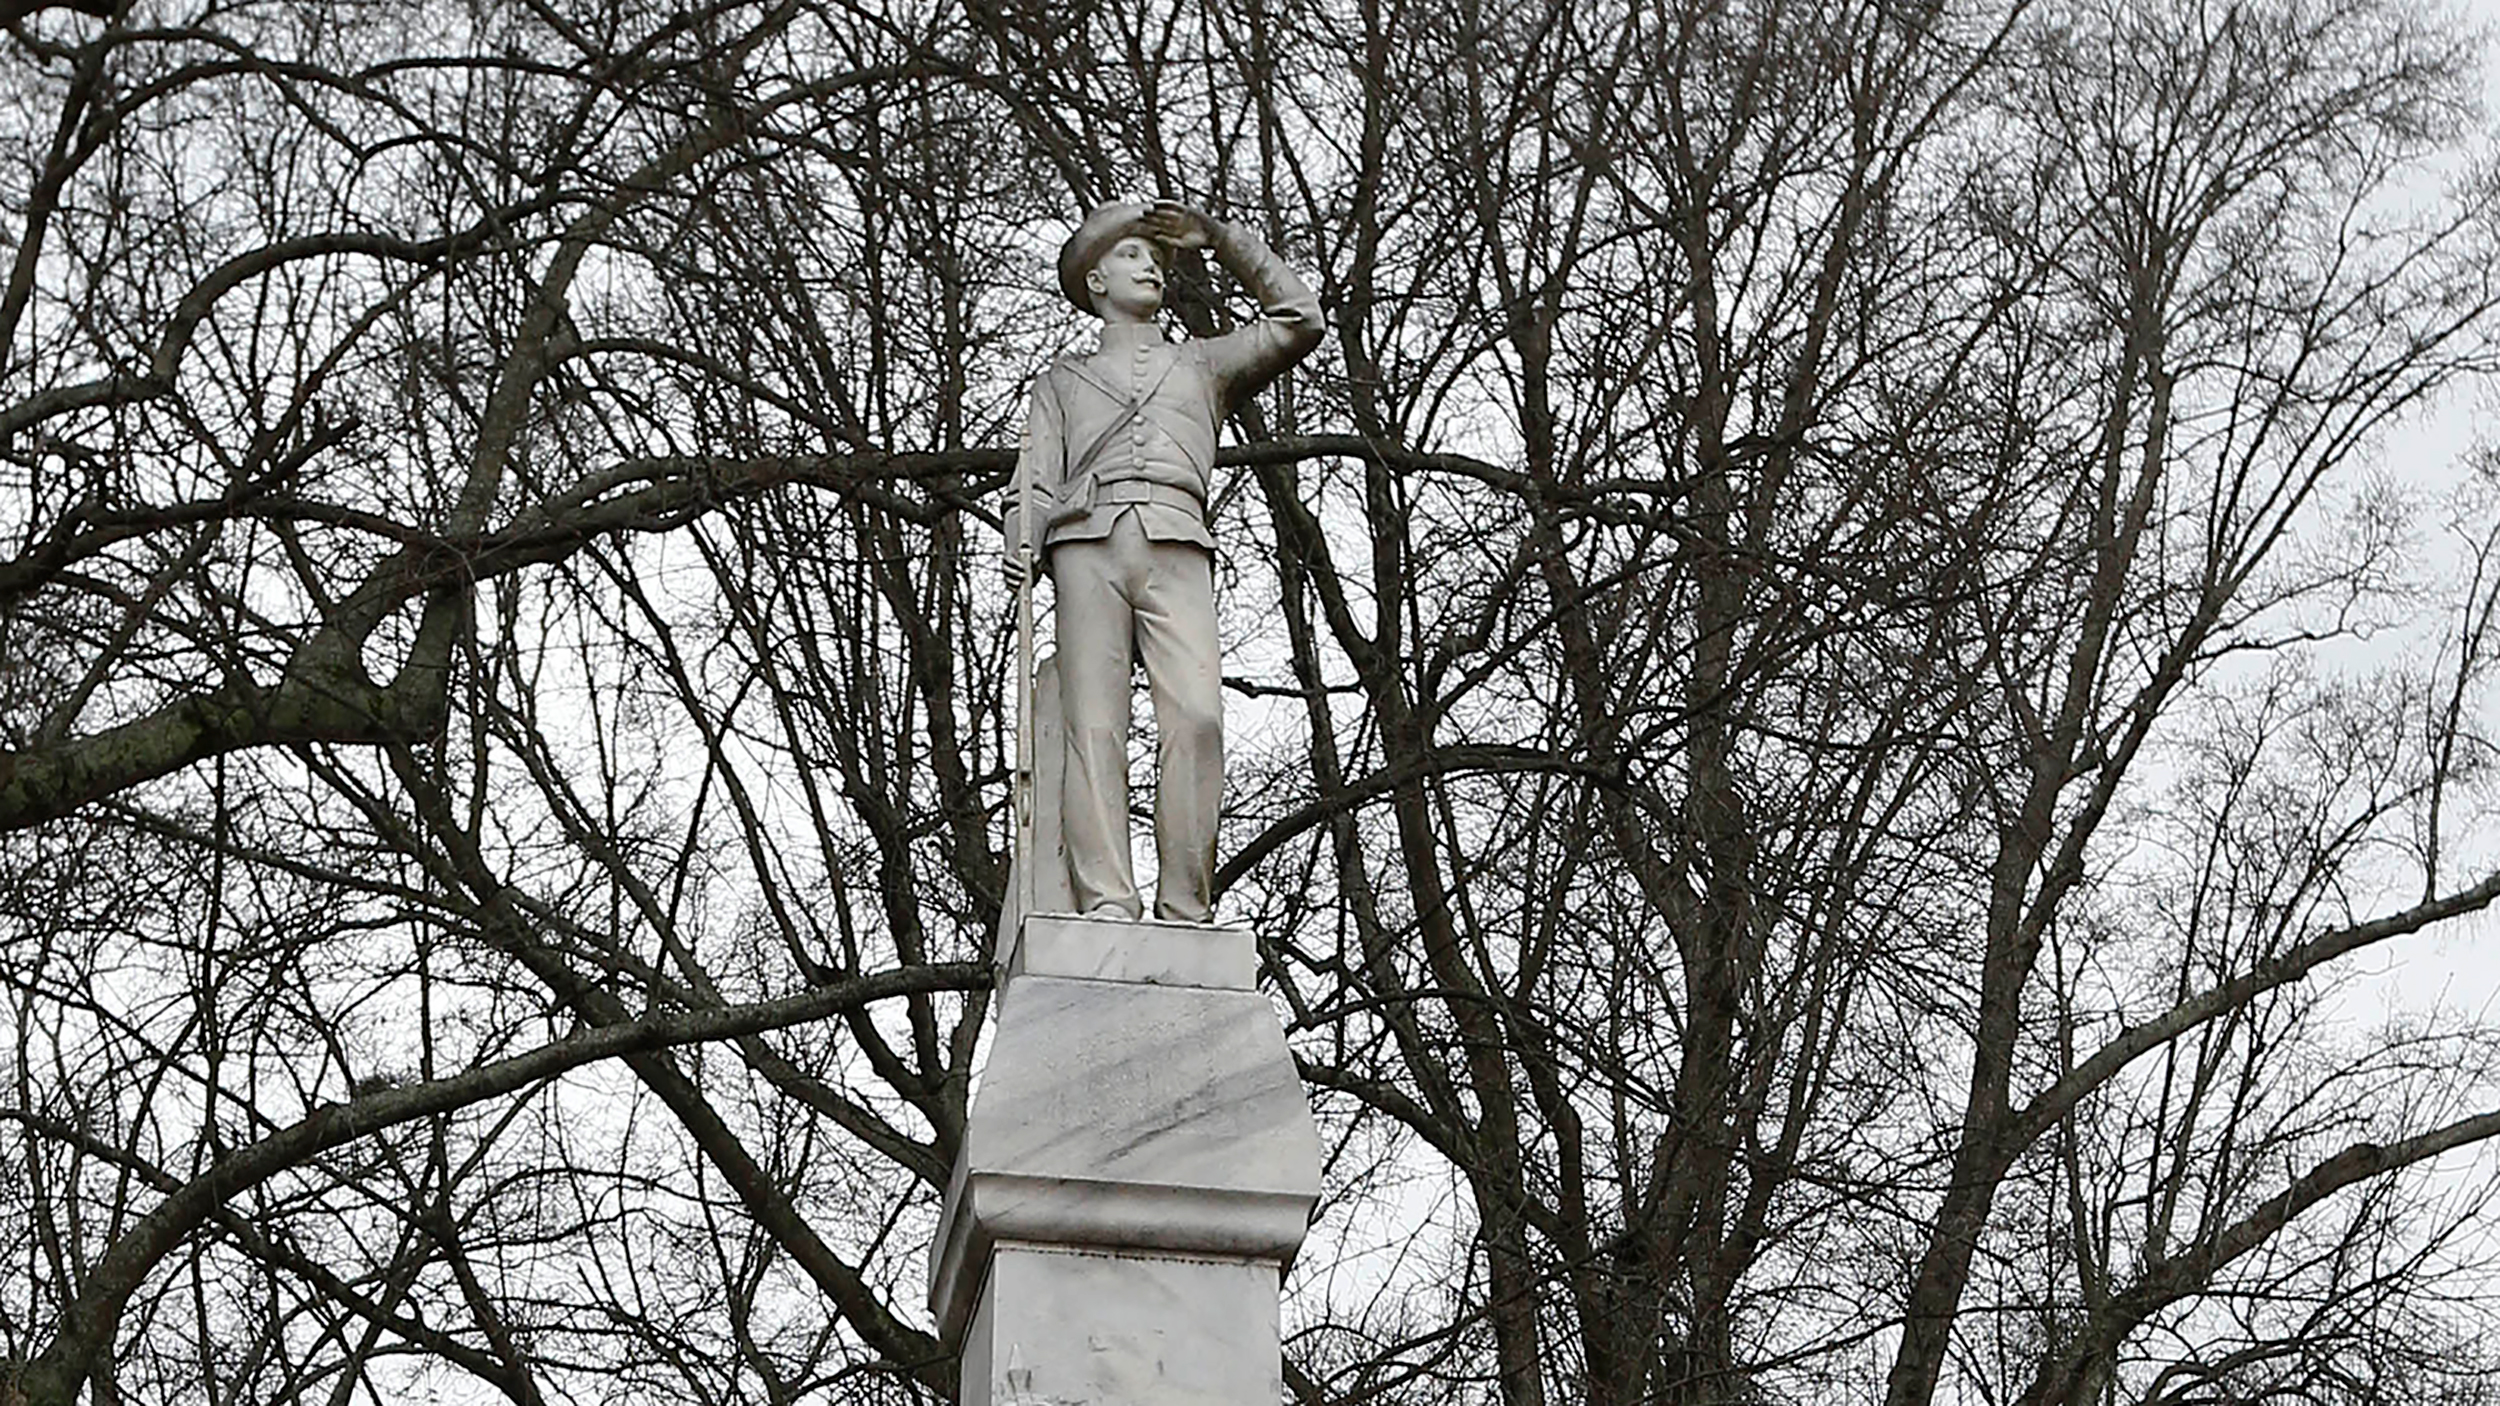 University of Mississippi approves plan to relocate campus Confederate monument